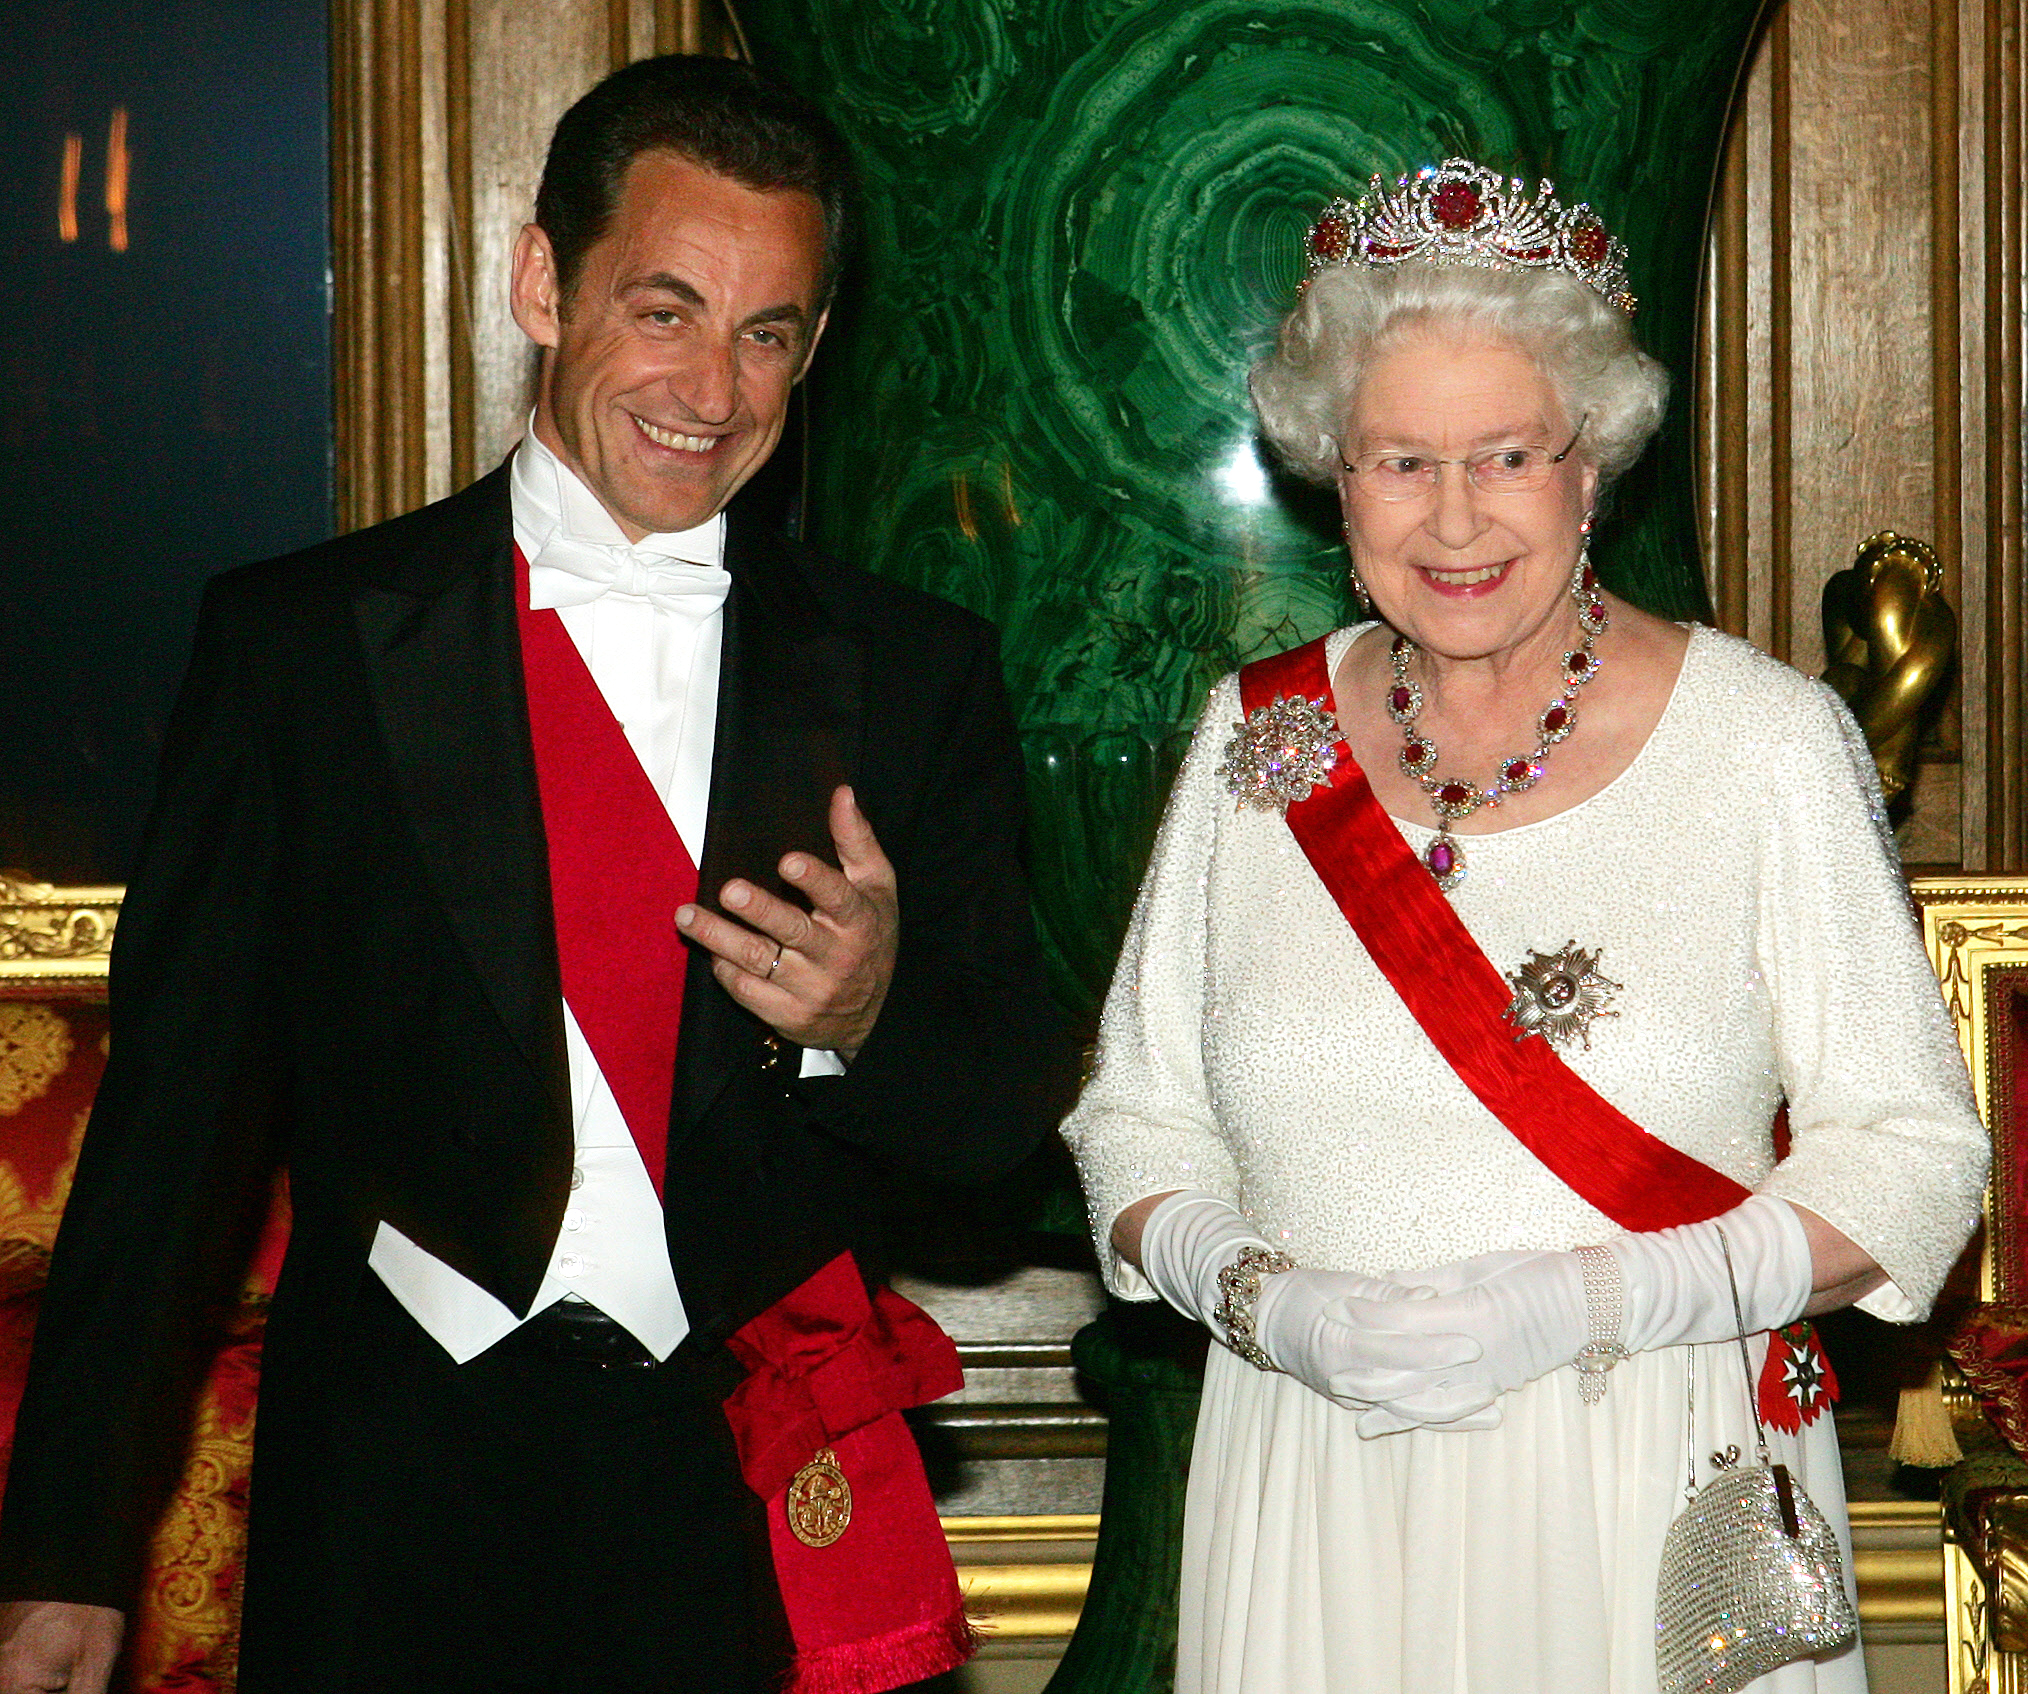 Queen Elizabeth II hosts a State Banquet for President Nicolas Sarkozy at Windsor Castle